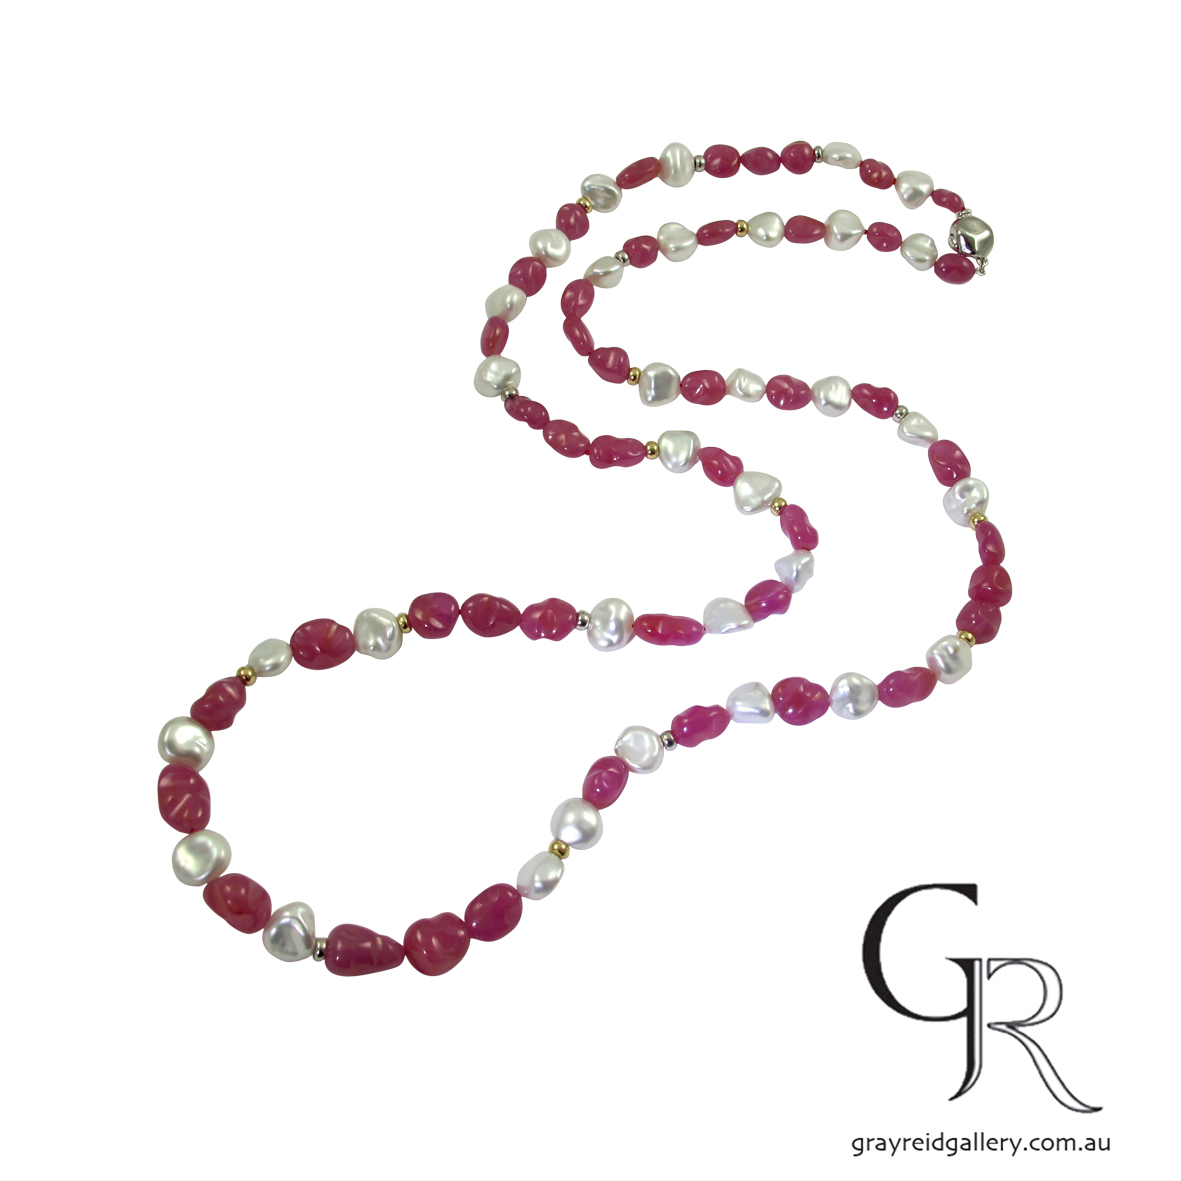 Bespoke necklace ruby Beads and pearls Reid Gallery Melbourne Bespoke necklace Beads and pearls Reid Gallery Melbourne Gray Reid Gallery Melbourne 2017-05-23 16.42.25.jpg